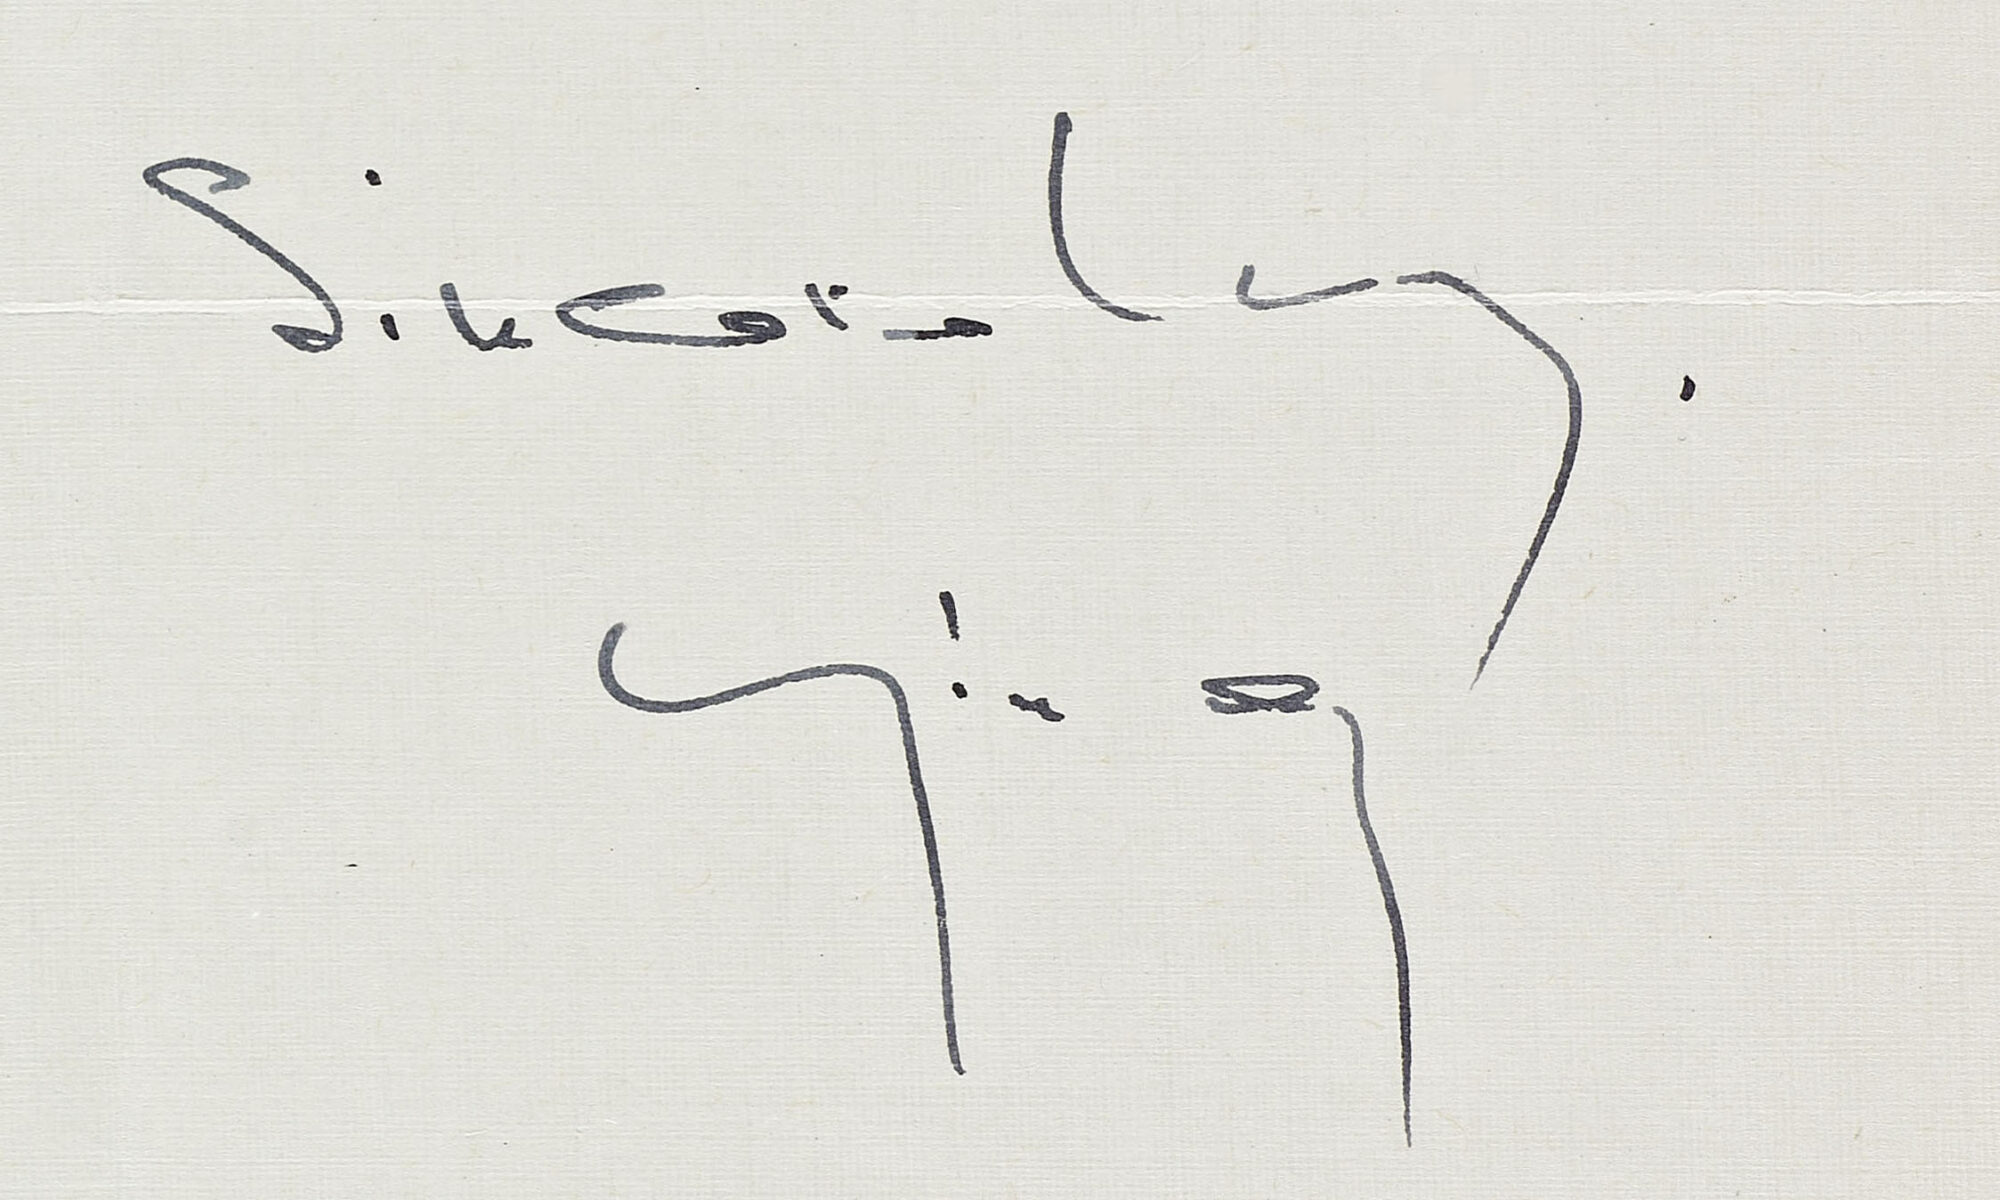 Letter signature on paper